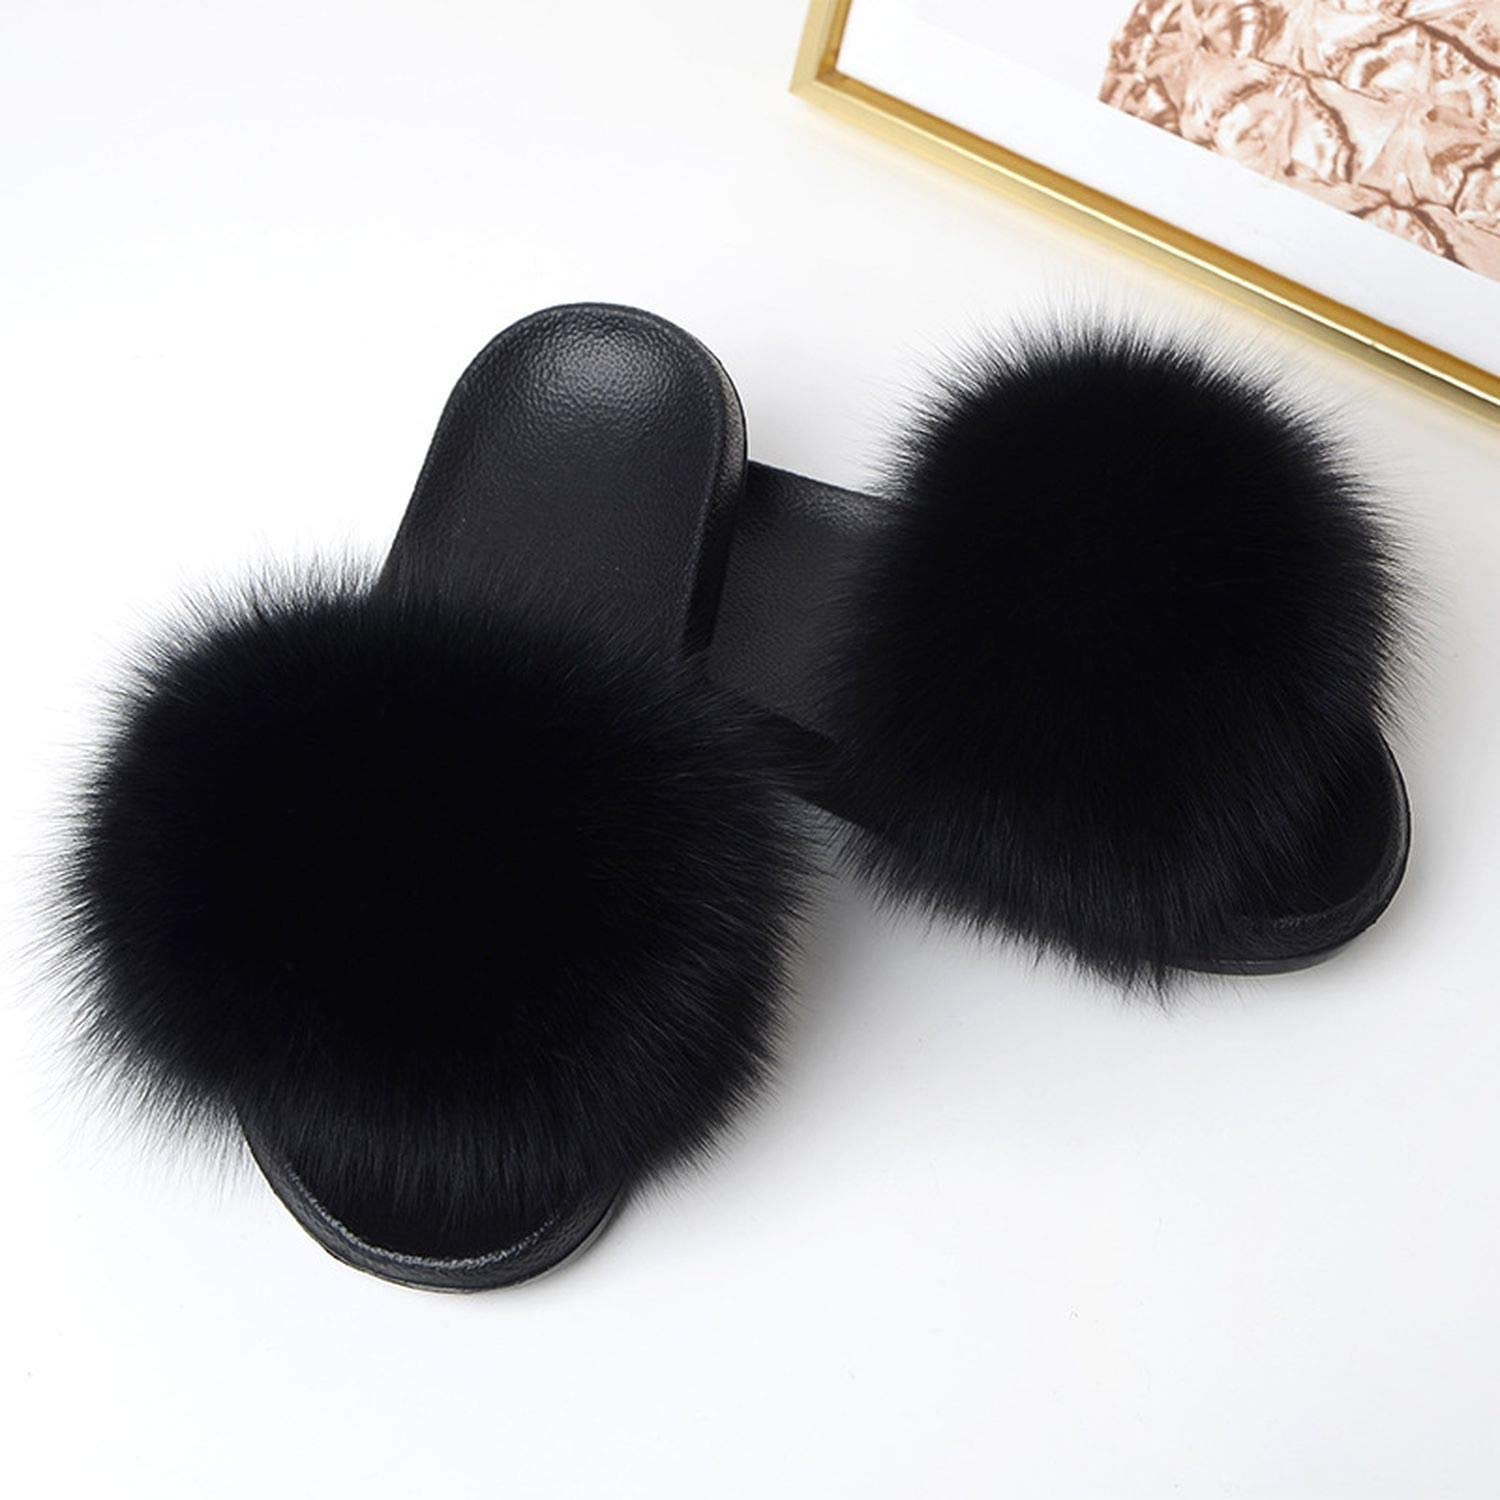 Huntty Plush Furry Real Fur Slippers 2019 Mixed colors Fox Hair Slides Summer shoes Women Plus Size Flip Flops Ladies